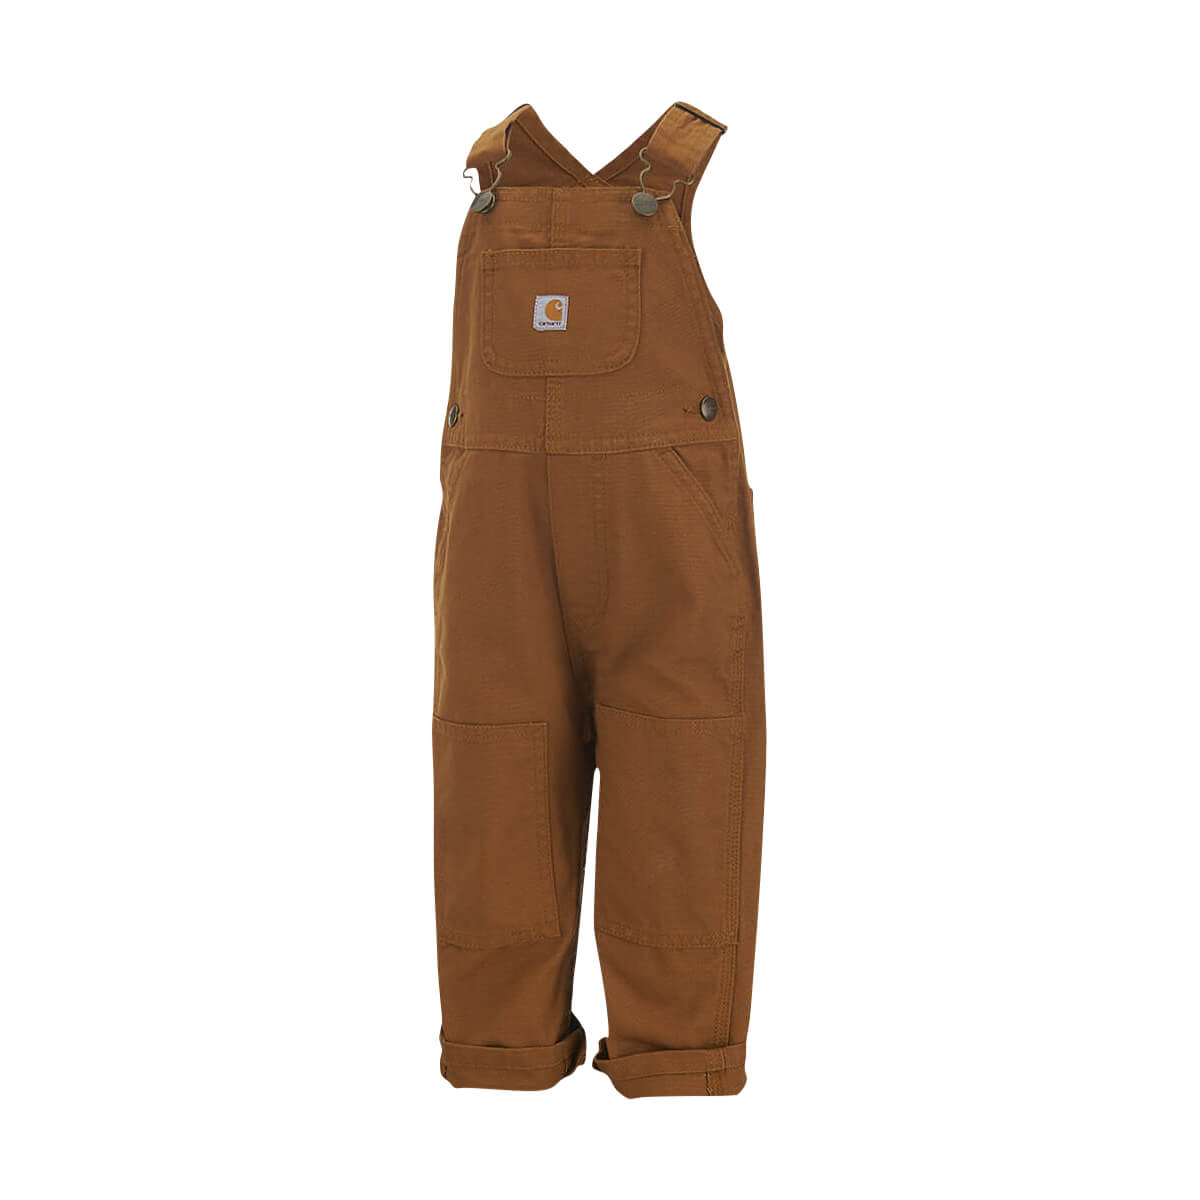 Boys' Canvas Bib Overall